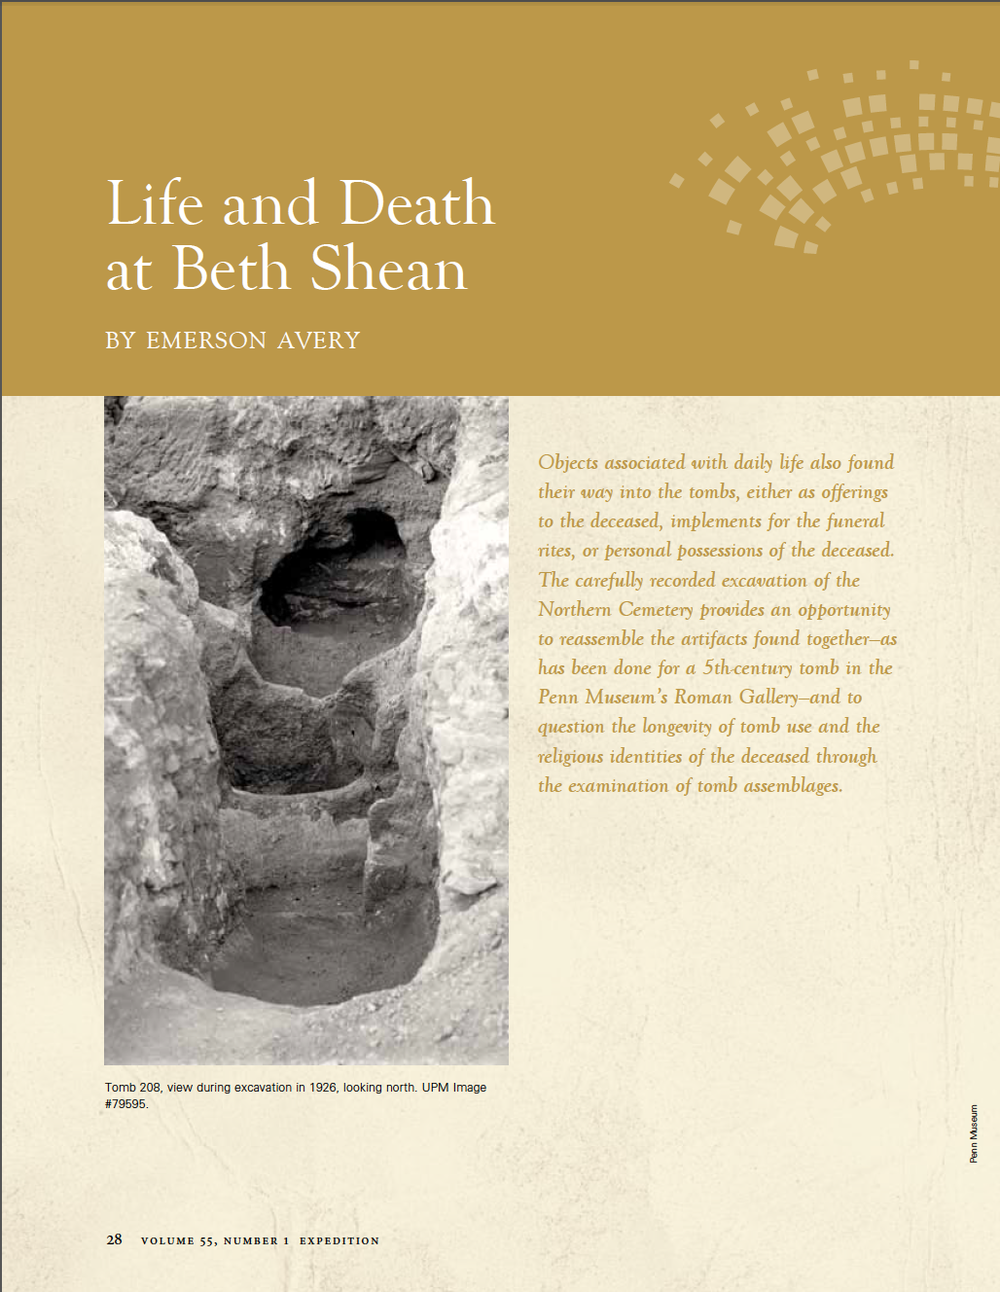 "Emerson Avery, ""Life and Death at Beth Shean,"" Expedition 55, no. 1 (2013): 28-32."